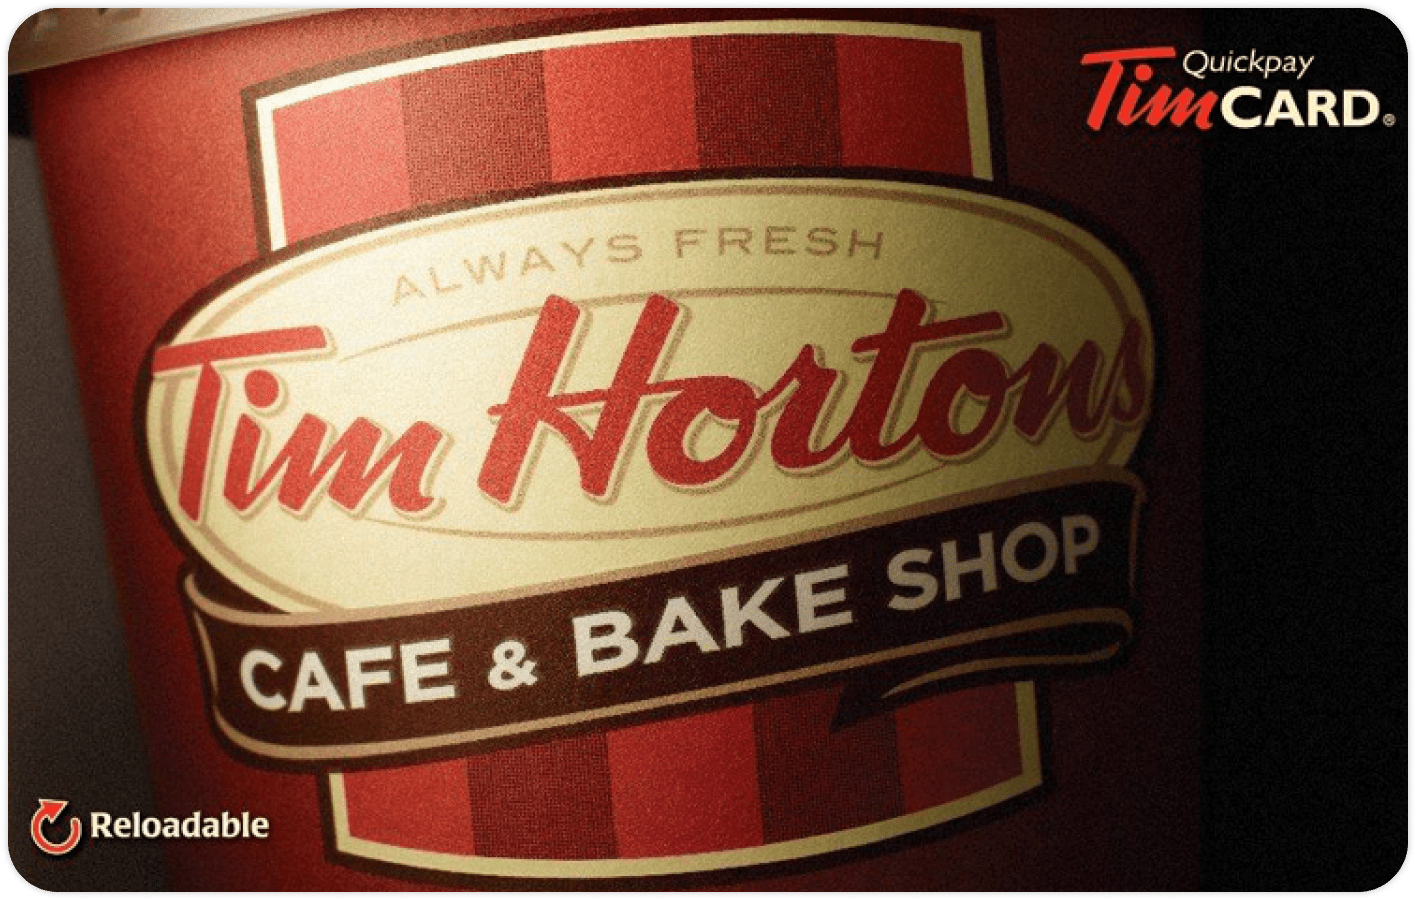 Tim Hortons gift card